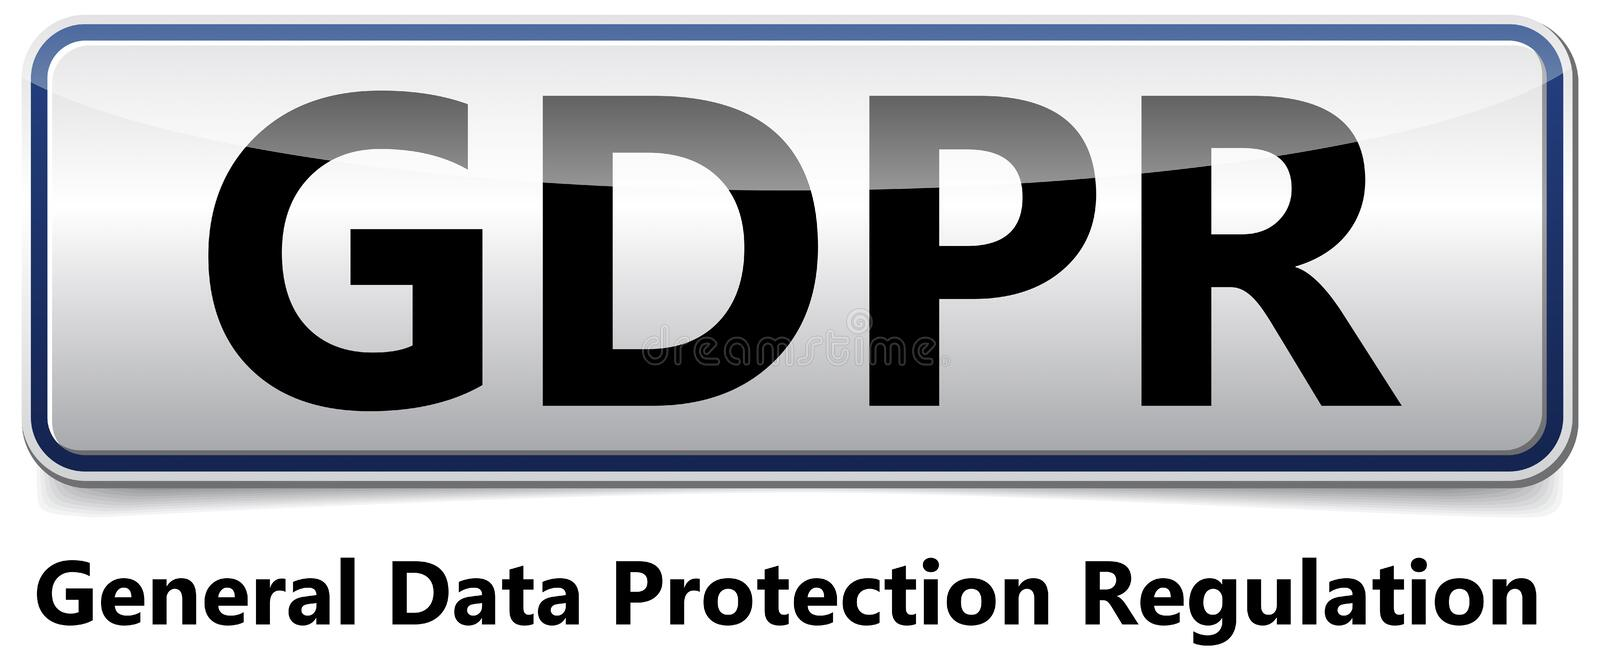 GDPR - General Data Protection Regulation. Glossy banner with sh stock illustration